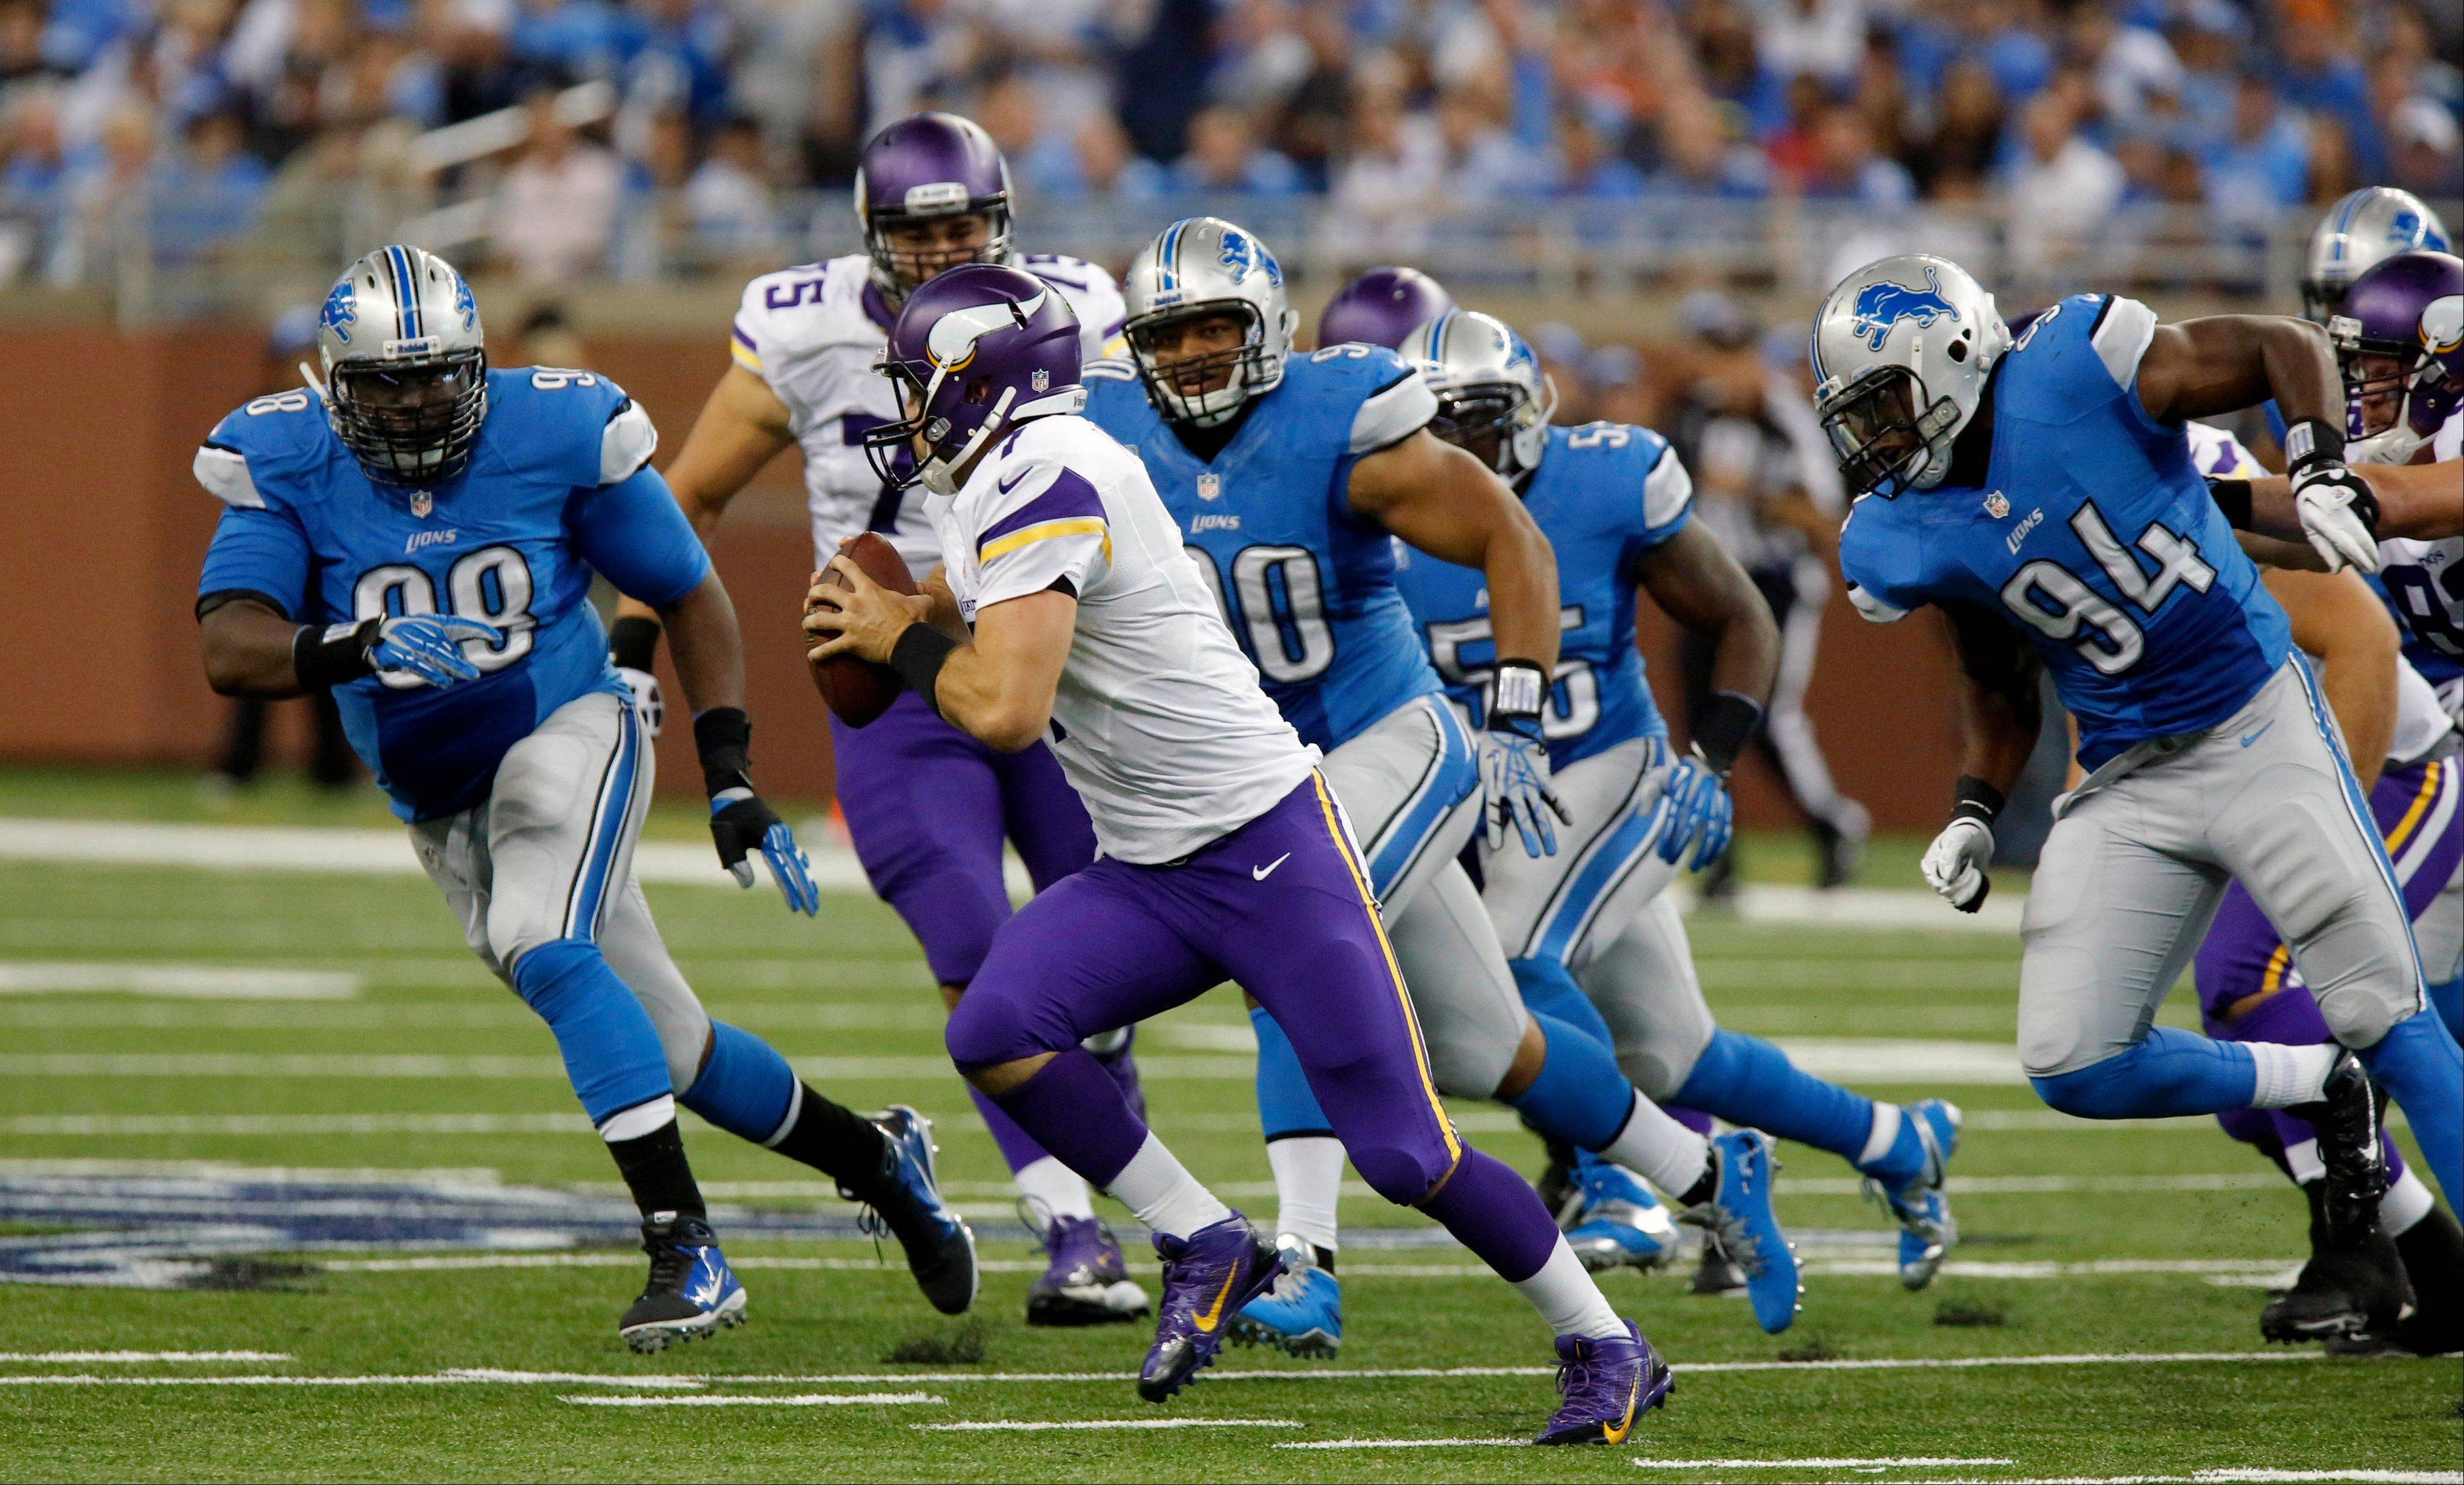 Minnesota Vikings quarterback Christian Ponder (7) is chased by Detroit Lions defensive tackle Nick Fairley (98), defensive tackle Ndamukong Suh (90) and defensive end Ezekiel Ansah (94) during the fourth quarter of an NFL football game at Ford Field in Detroit, Sunday, Sept. 8, 2013.